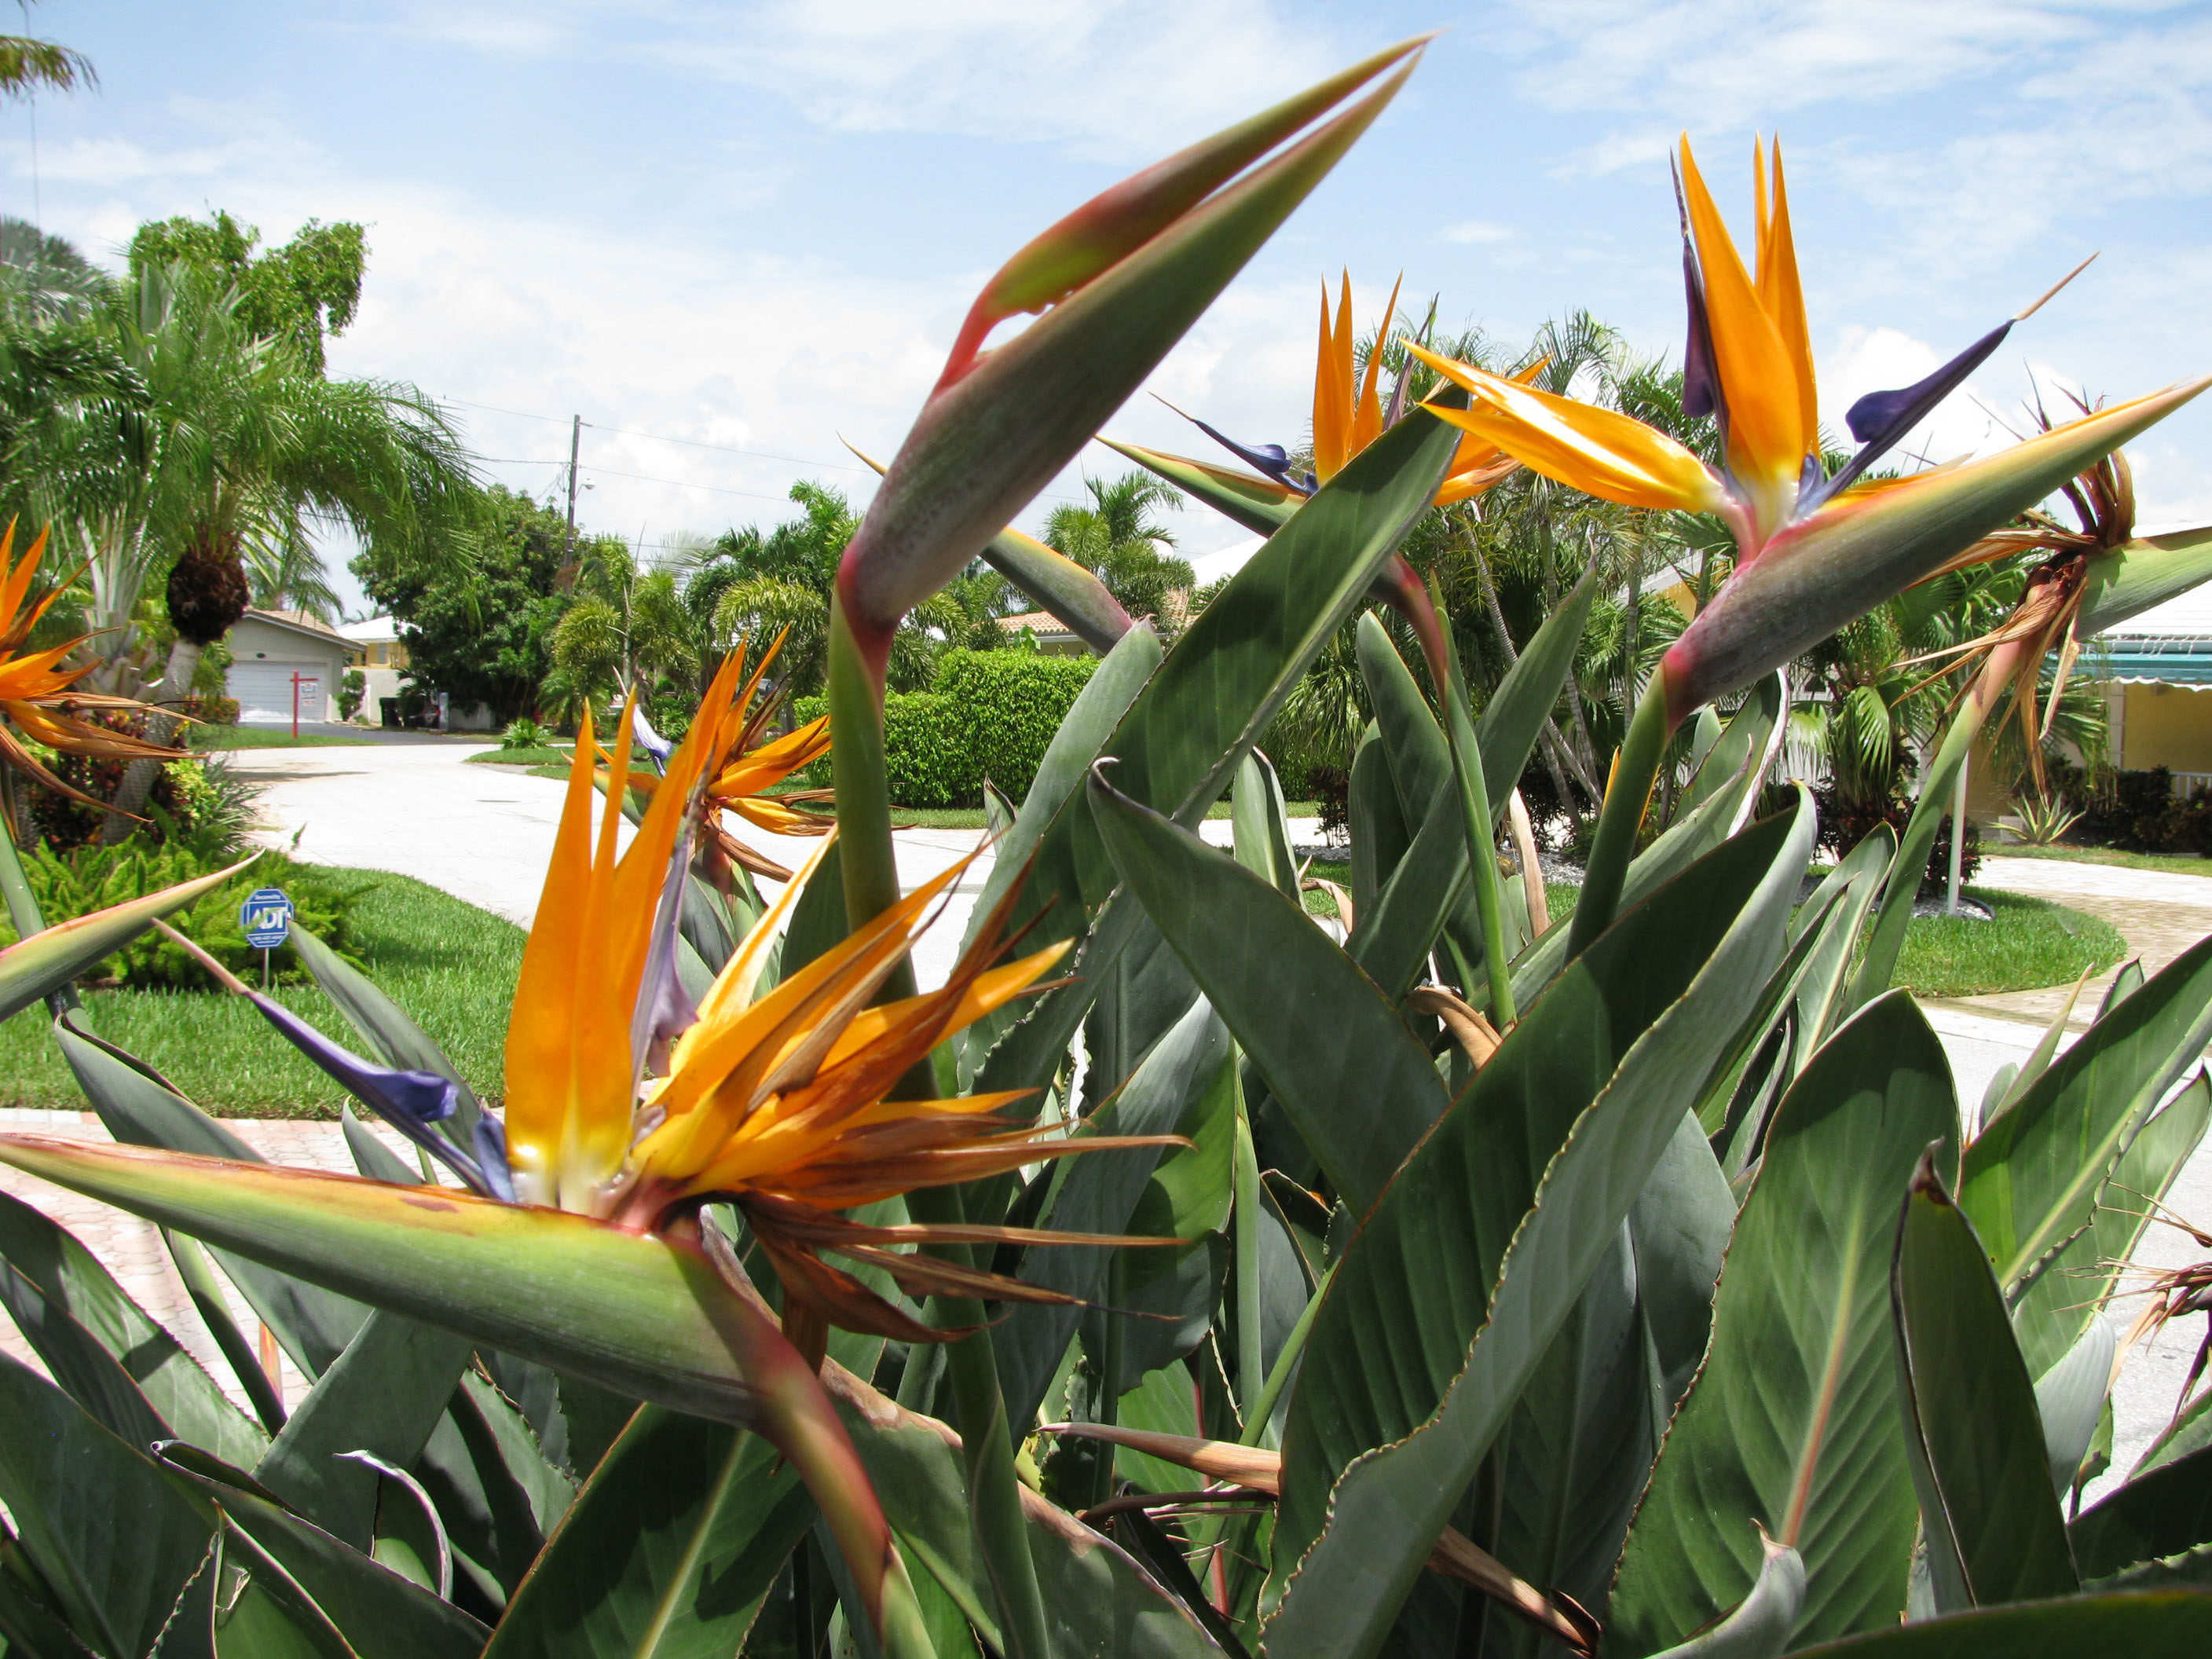 Thereafter Blooming Improves Yearly